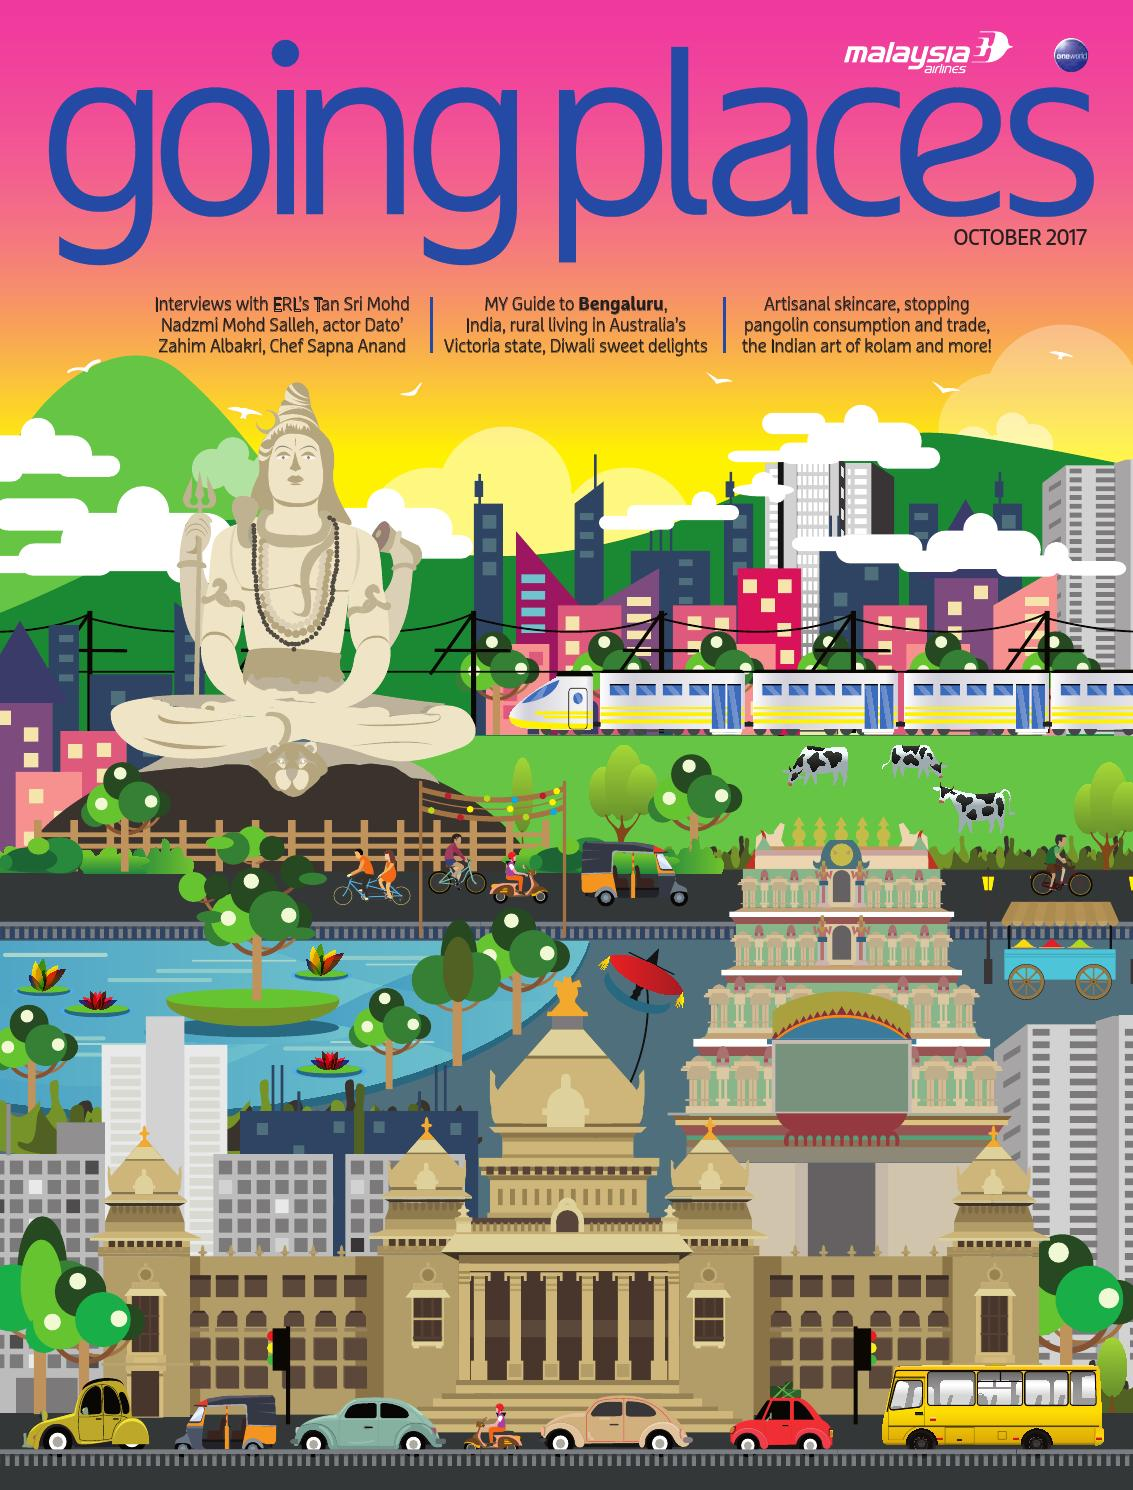 Going Places October 2017 By Spafax Malaysia Issuu